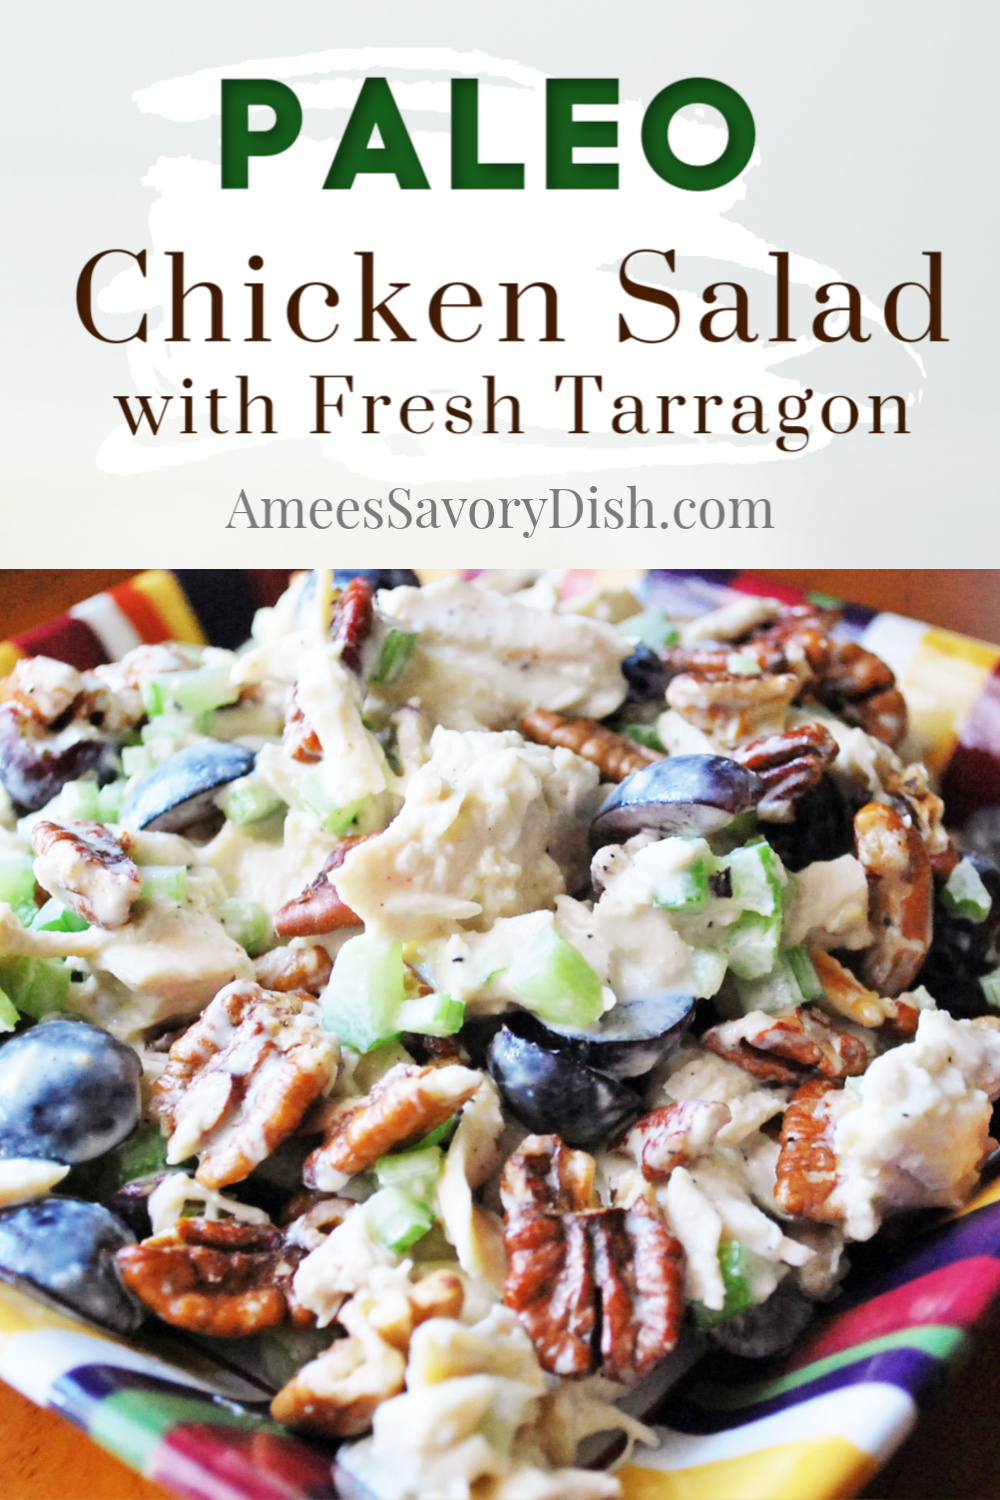 A sweet and savory Paleo chicken salad recipe made with boneless chicken, grapes, celery, toasted pecans, Paleo mayonnaise, and fresh tarragon. #chickensalad #paleorecipe #tarragonchickensalad via @Ameessavorydish